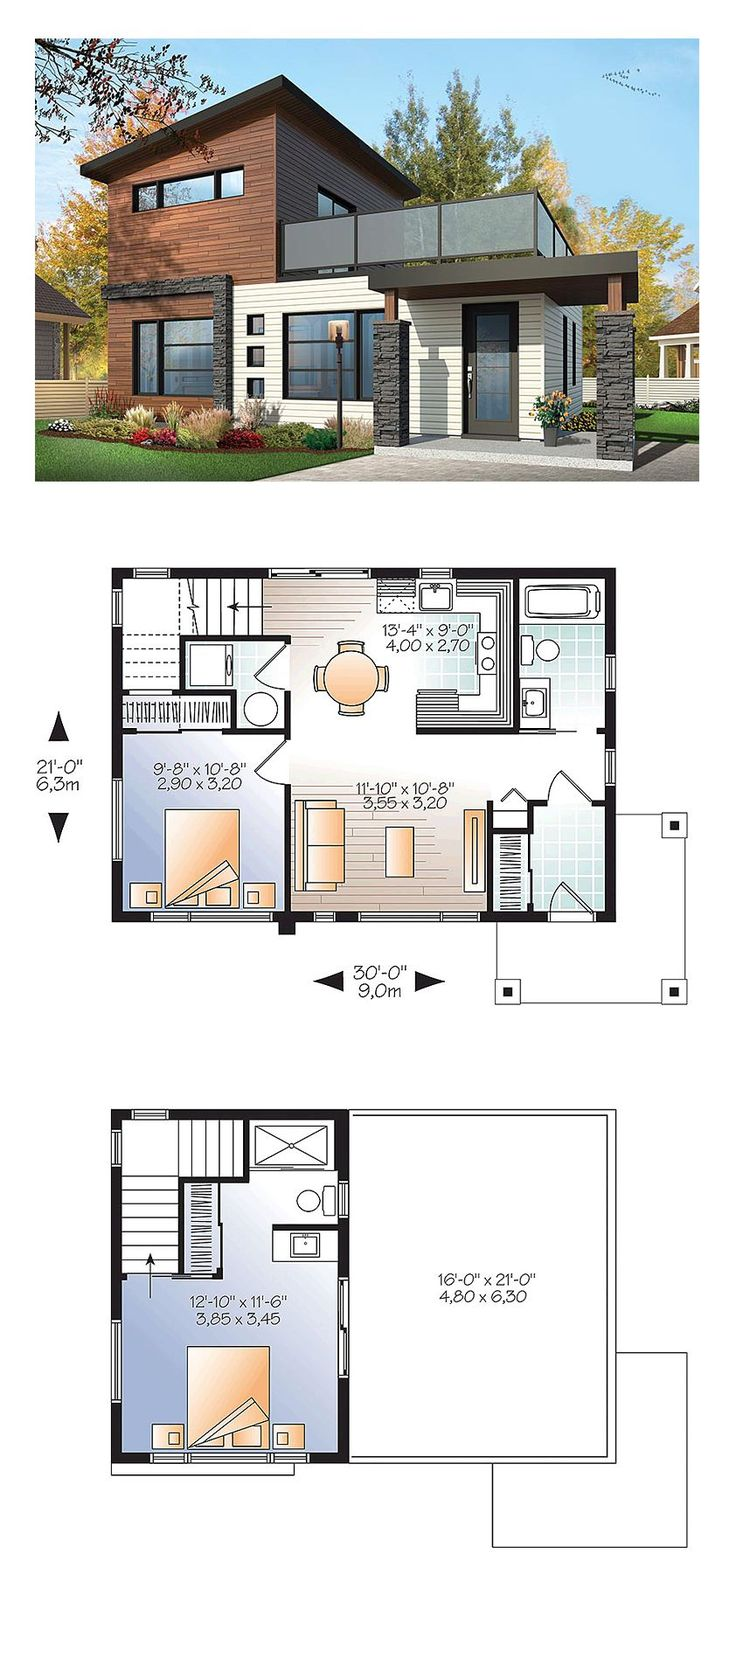 Outstanding Top 25 Ideas About Modern Tiny House On Pinterest Mini Homes Largest Home Design Picture Inspirations Pitcheantrous